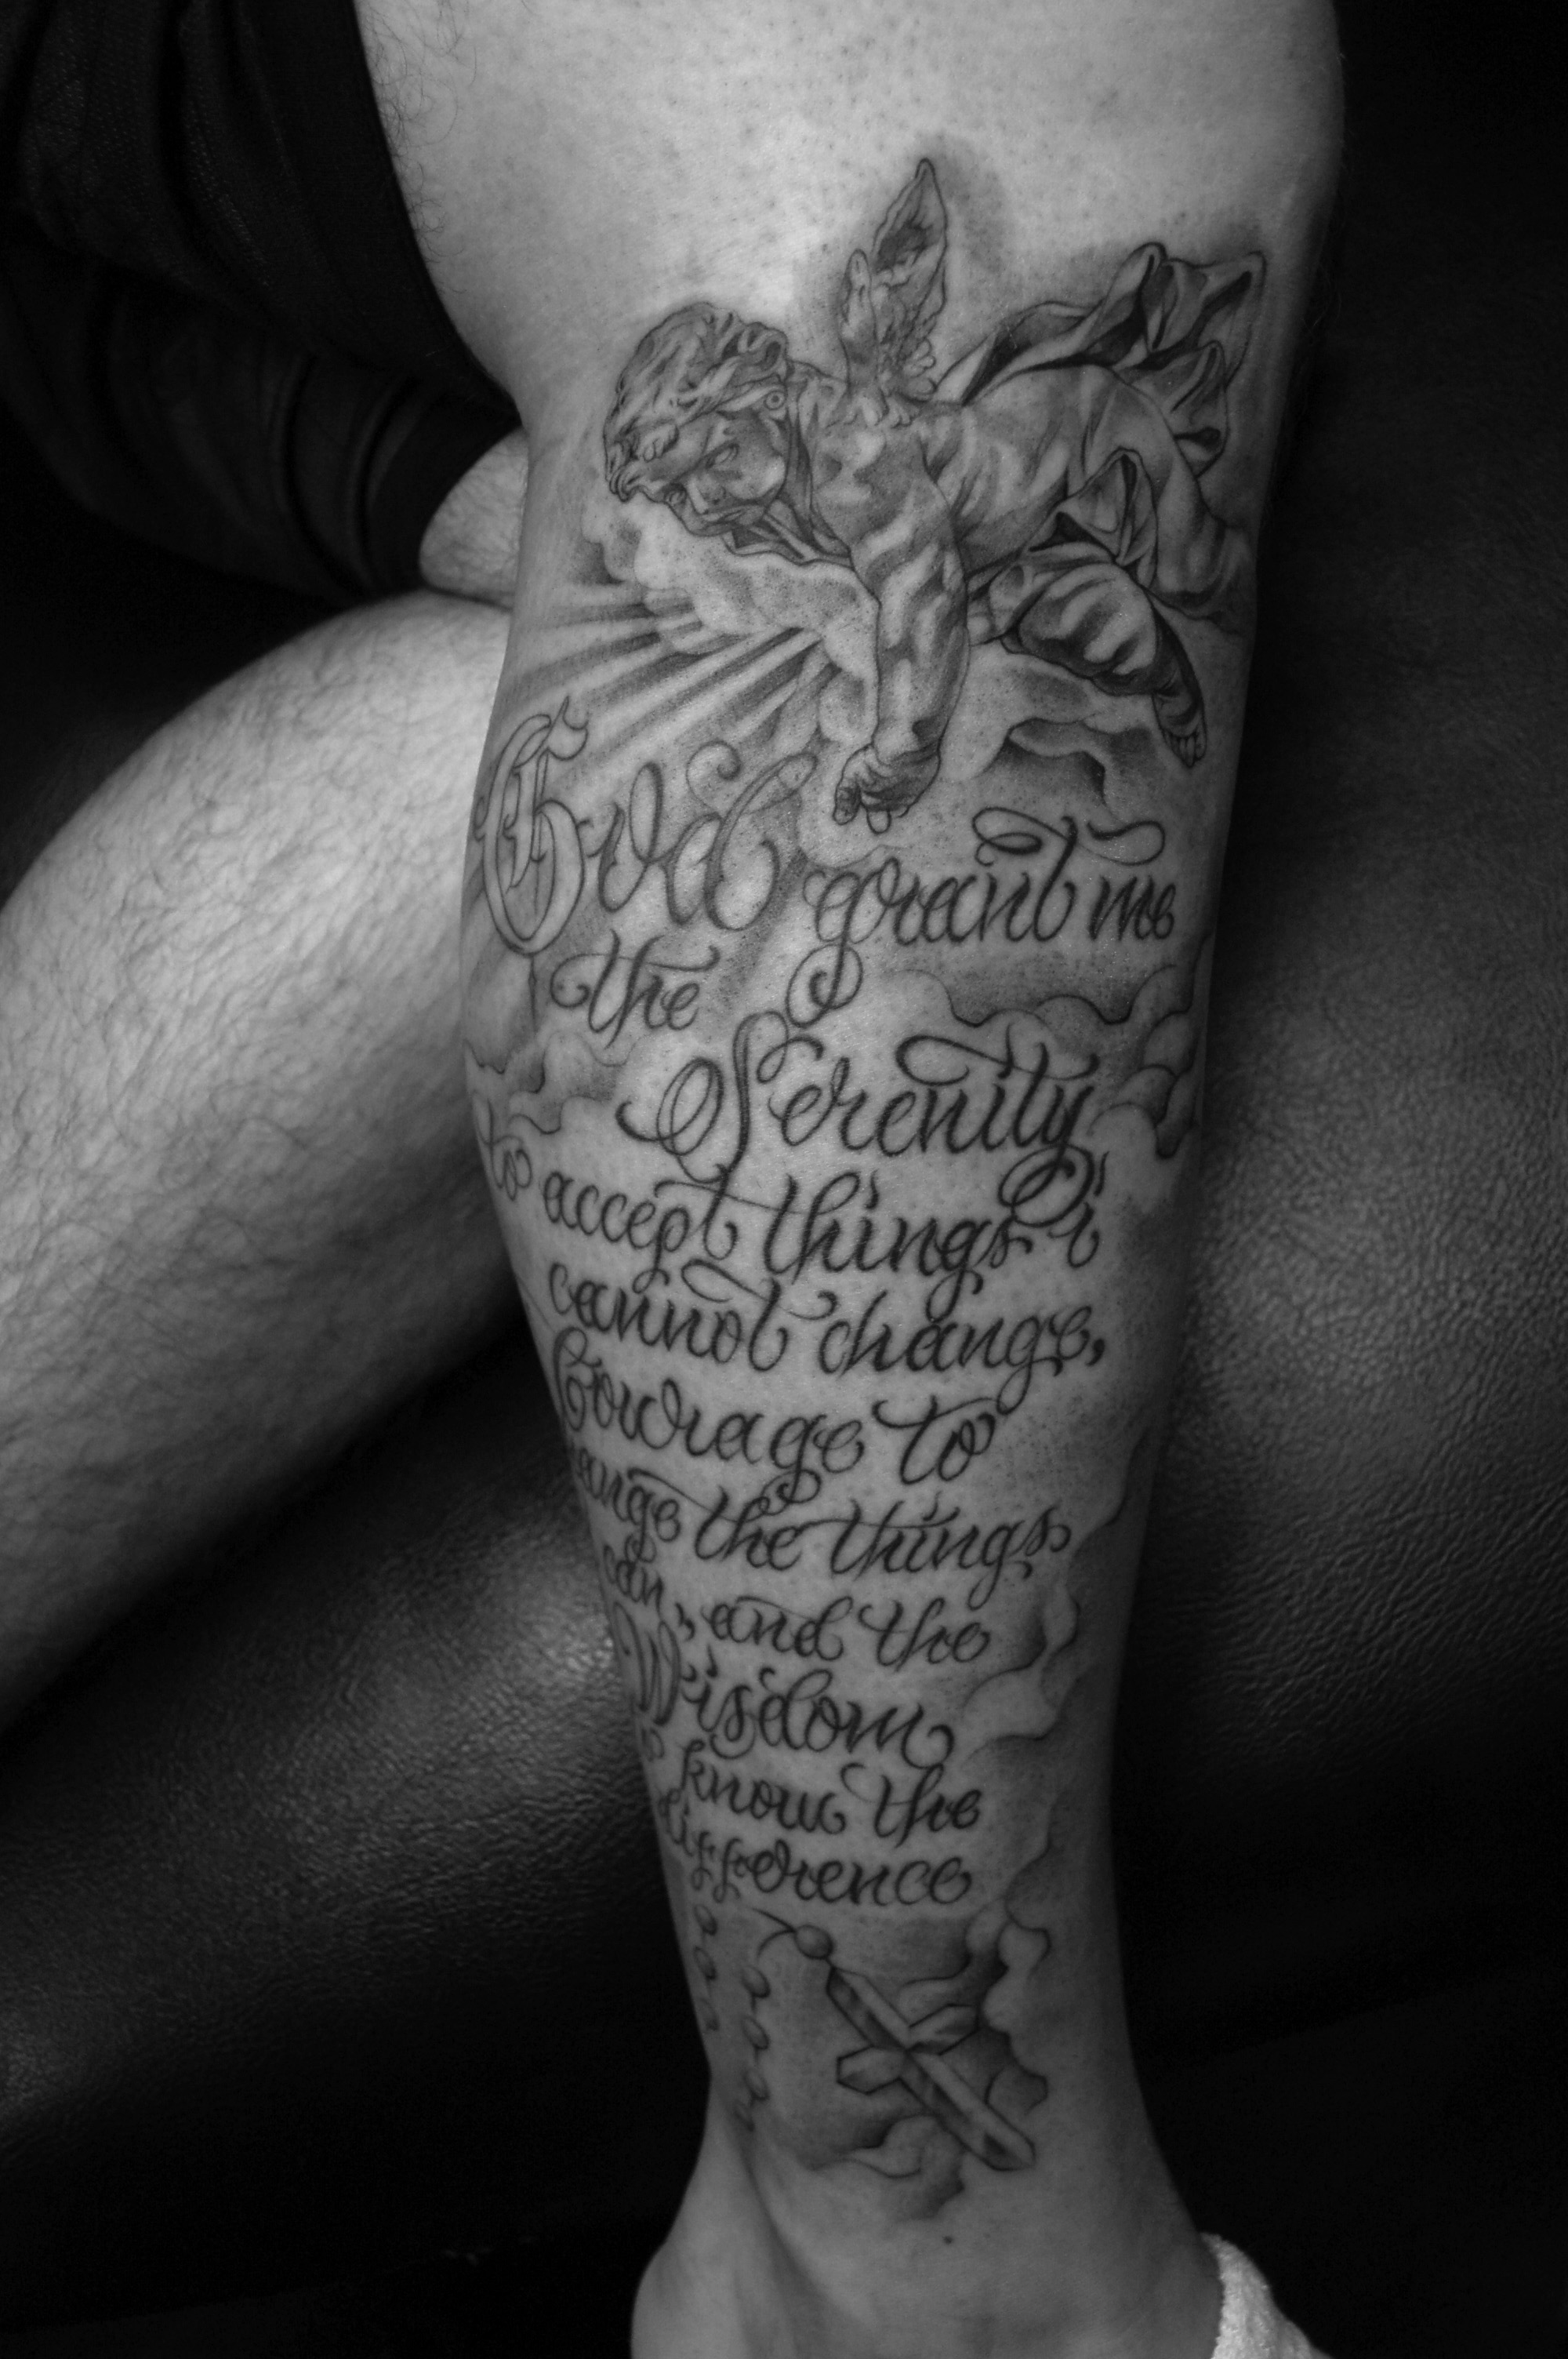 Designs For A Tarot Deck Celebrating: Serenity Prayer Tattoos Designs, Ideas And Meaning